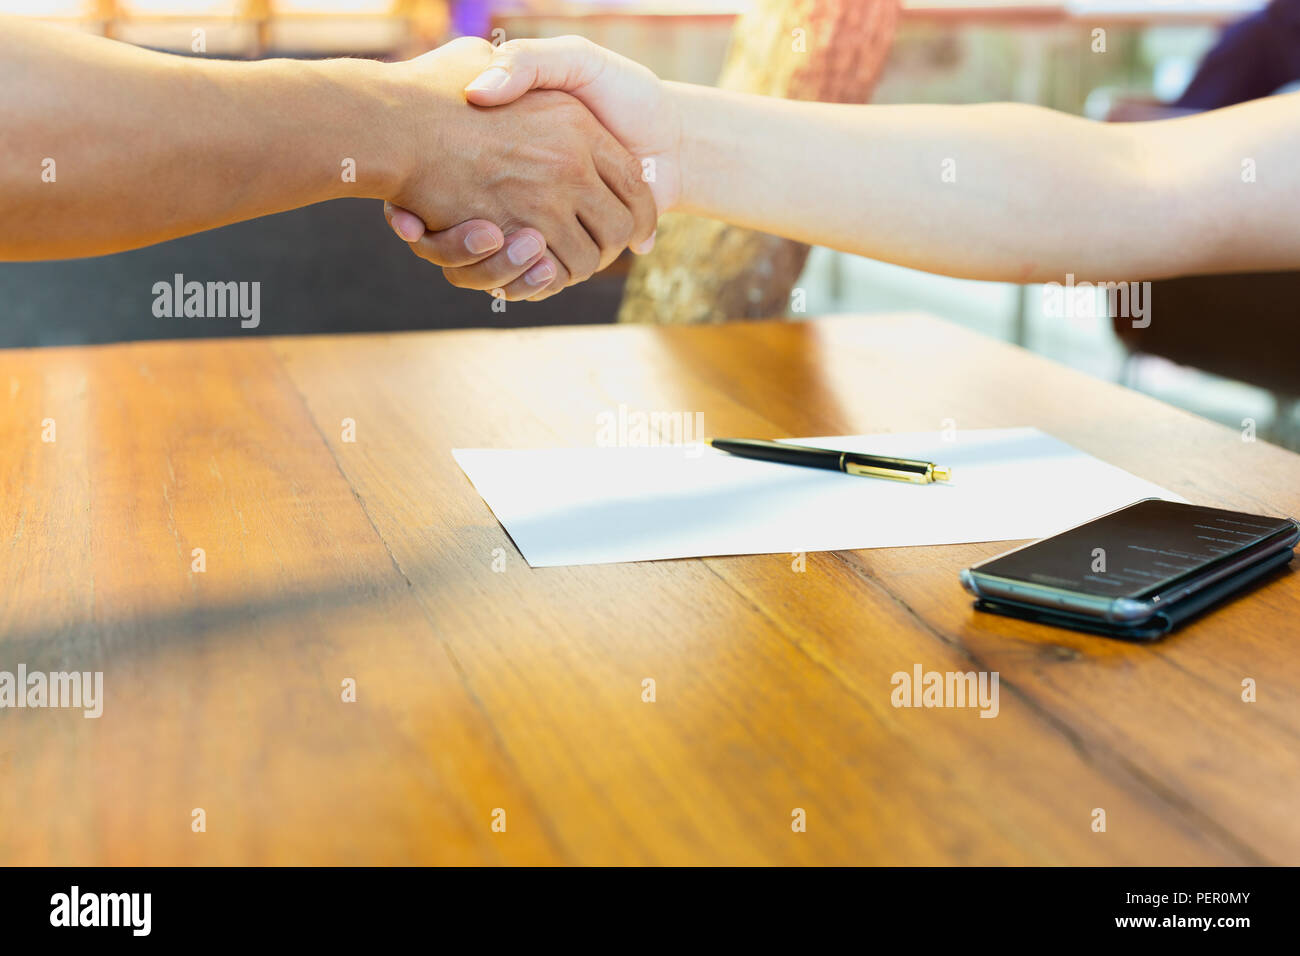 Two man hand shaking hands together with cell phone on wooden table